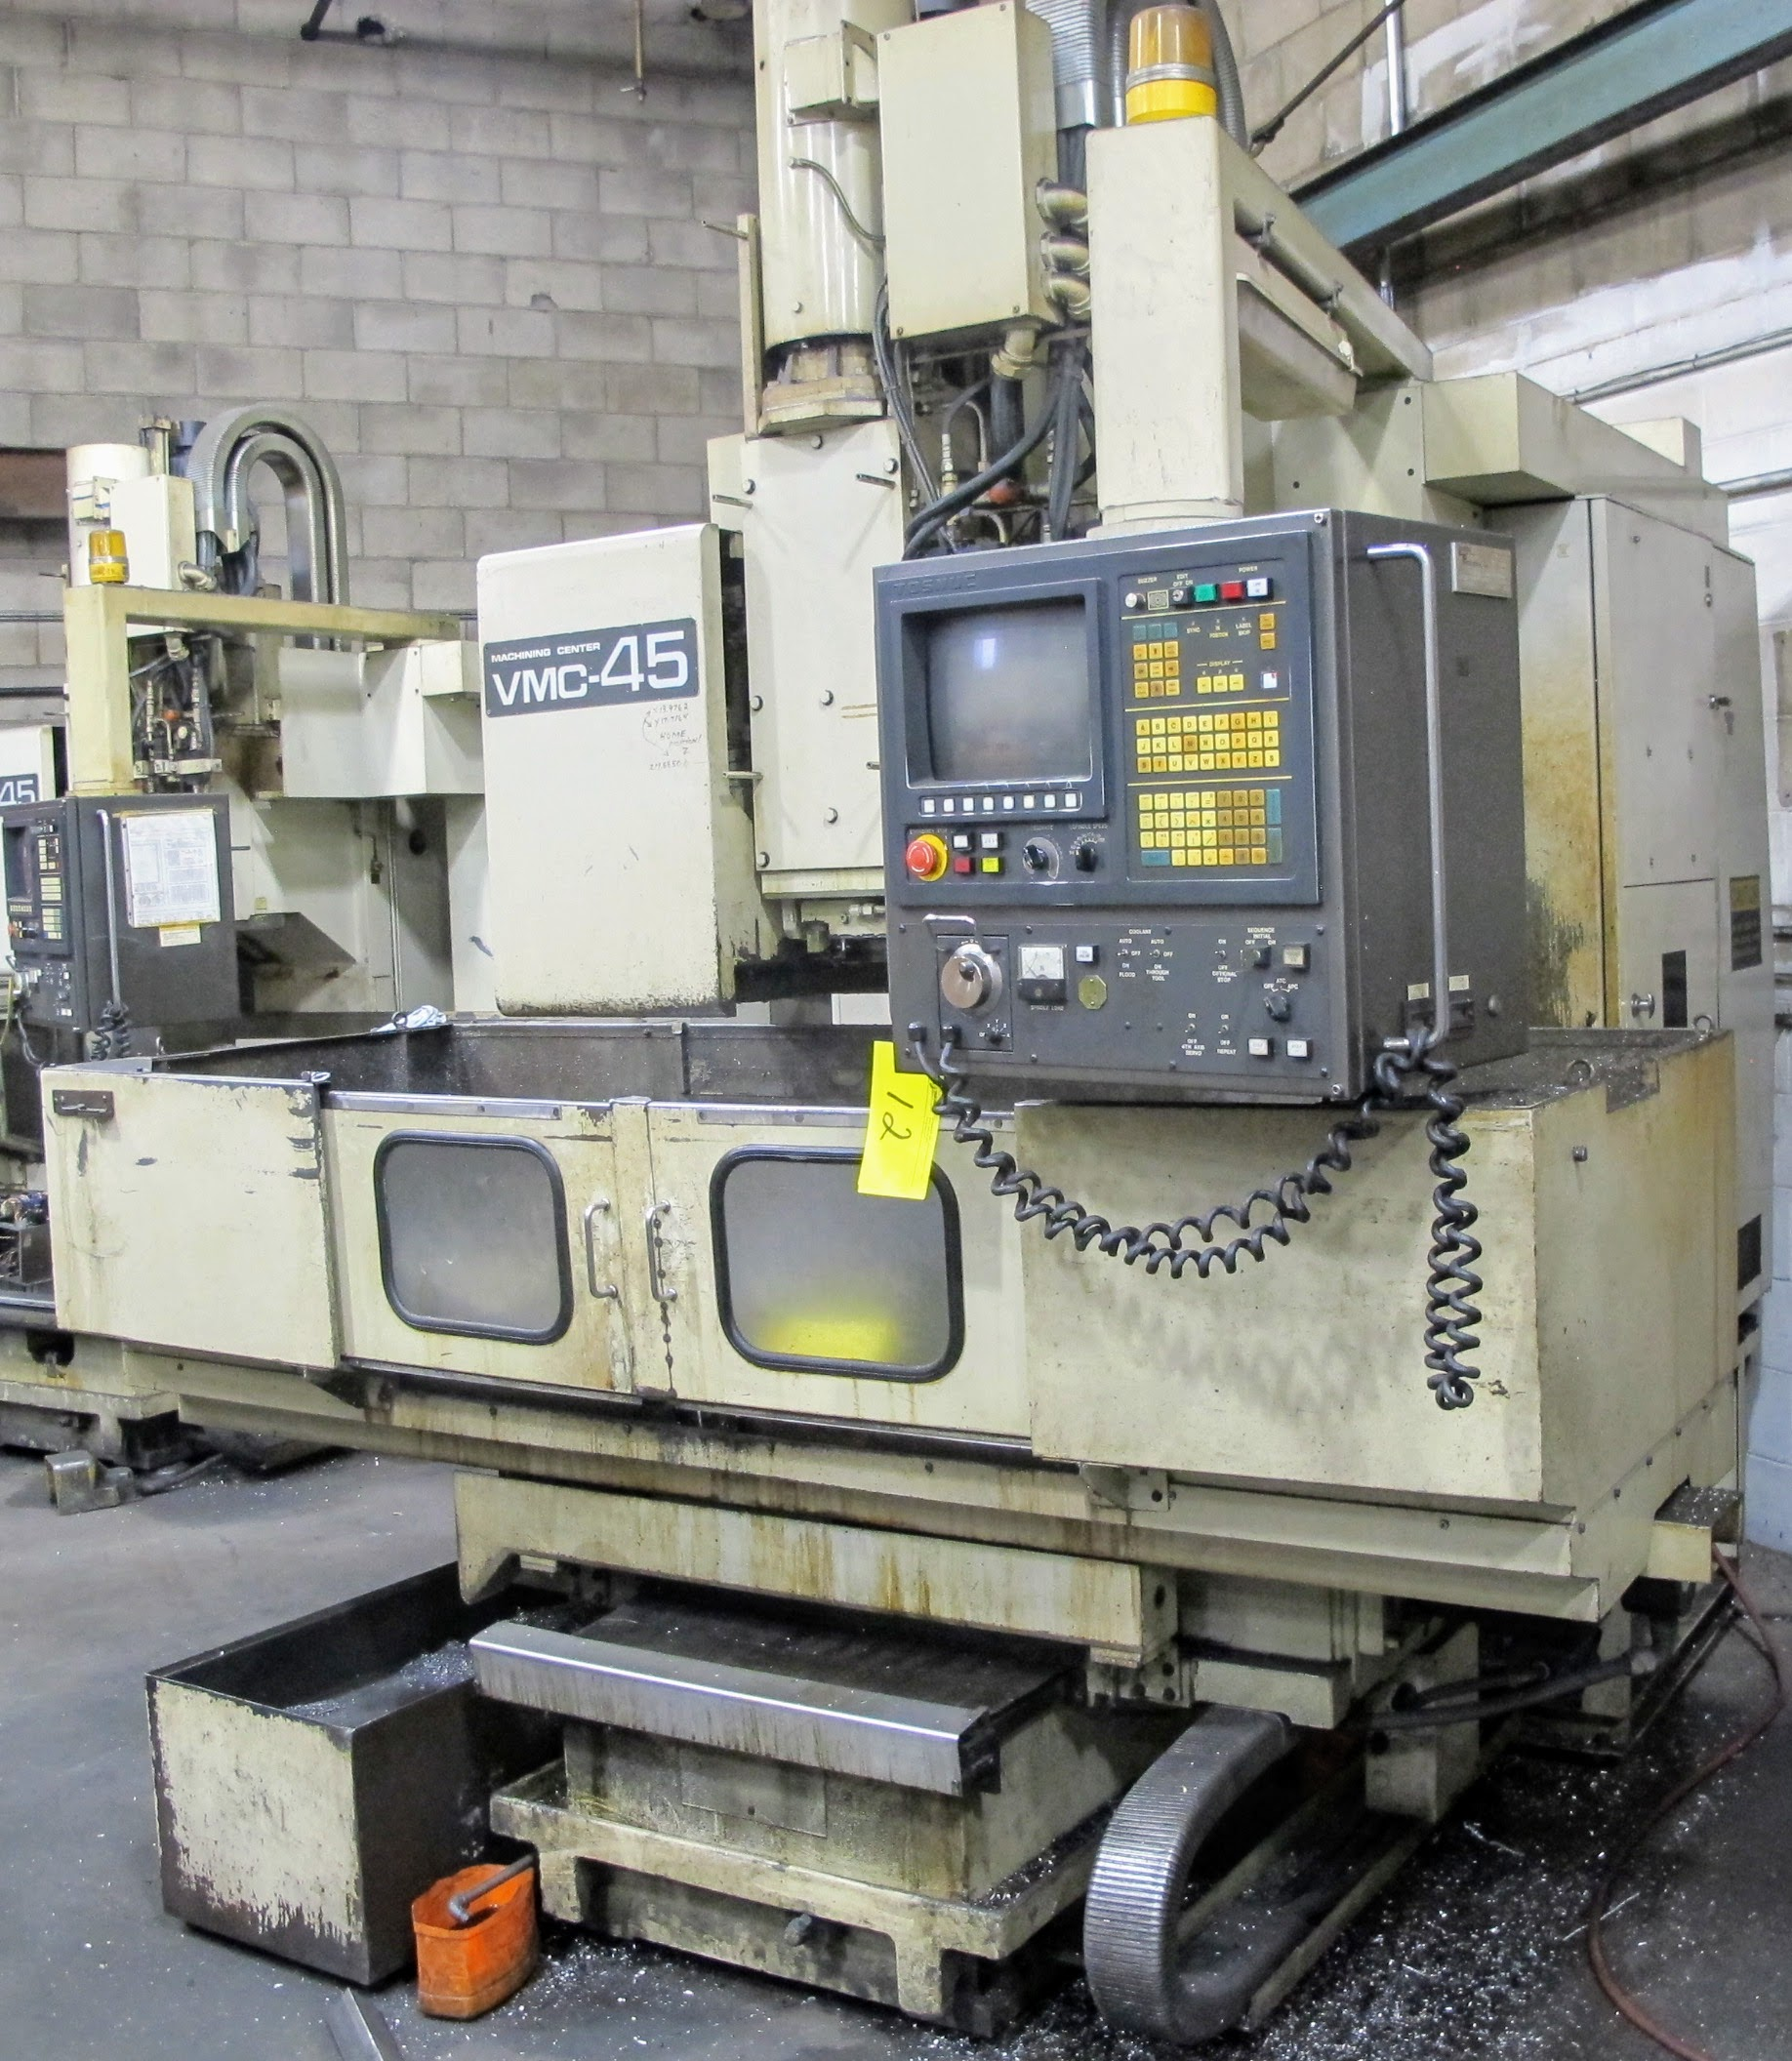 "SHIBAURA VMC-45 CNC VERTICAL MACHINING CENTER, 18"" X 40"" TABLE, TOSNUC CNC CONTROLS, 20 ATC, COOLING"